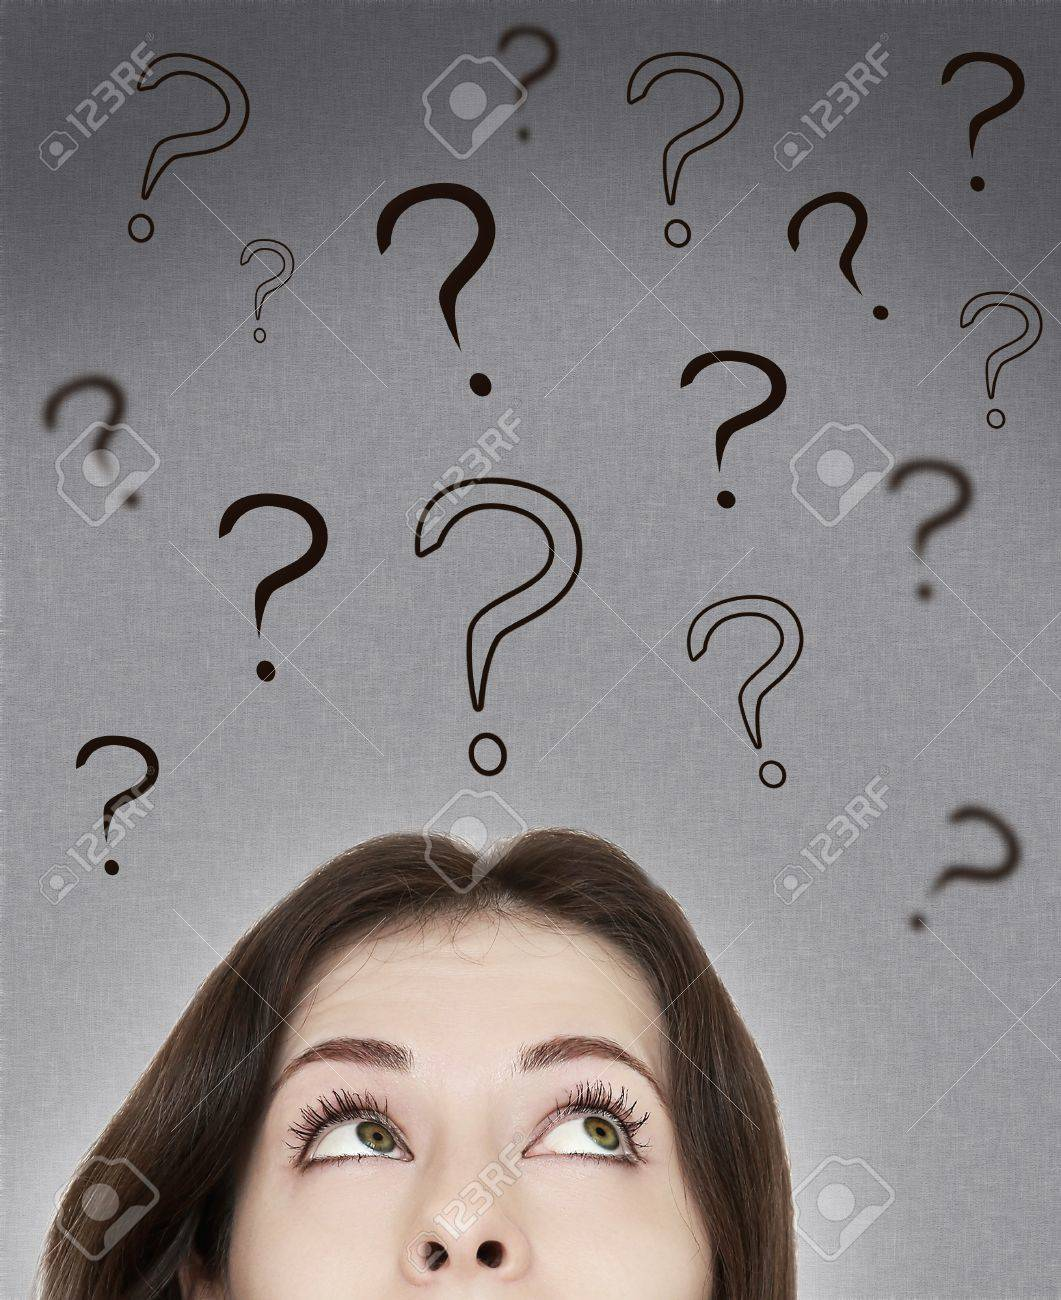 Beautiful thinking woman looking on questions marks above her head on grey background Stock Photo - 18443594